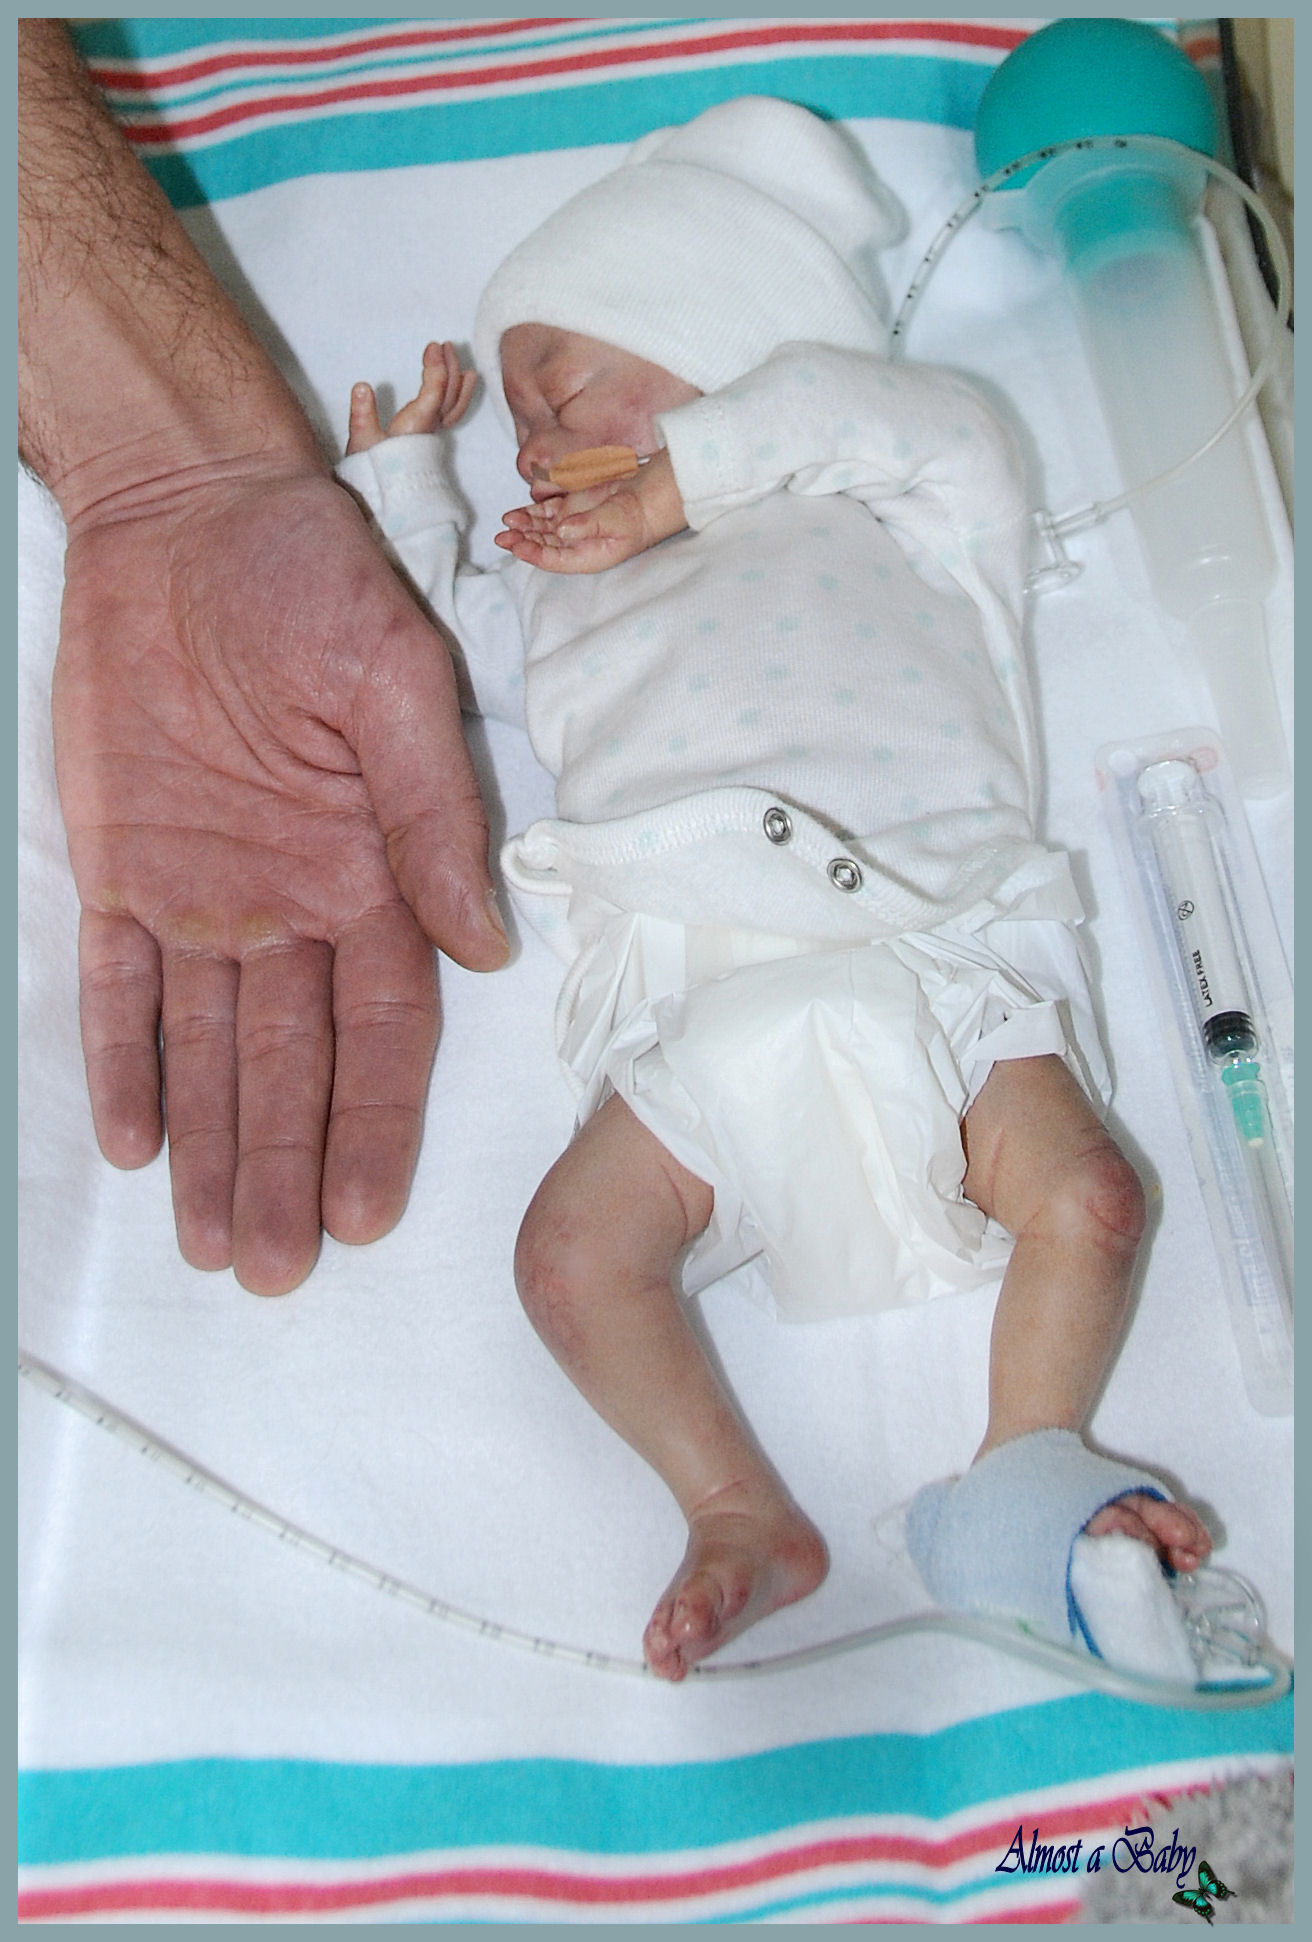 ABORTION 21 week Baby born Alive ! - Premature Baby Birth ...